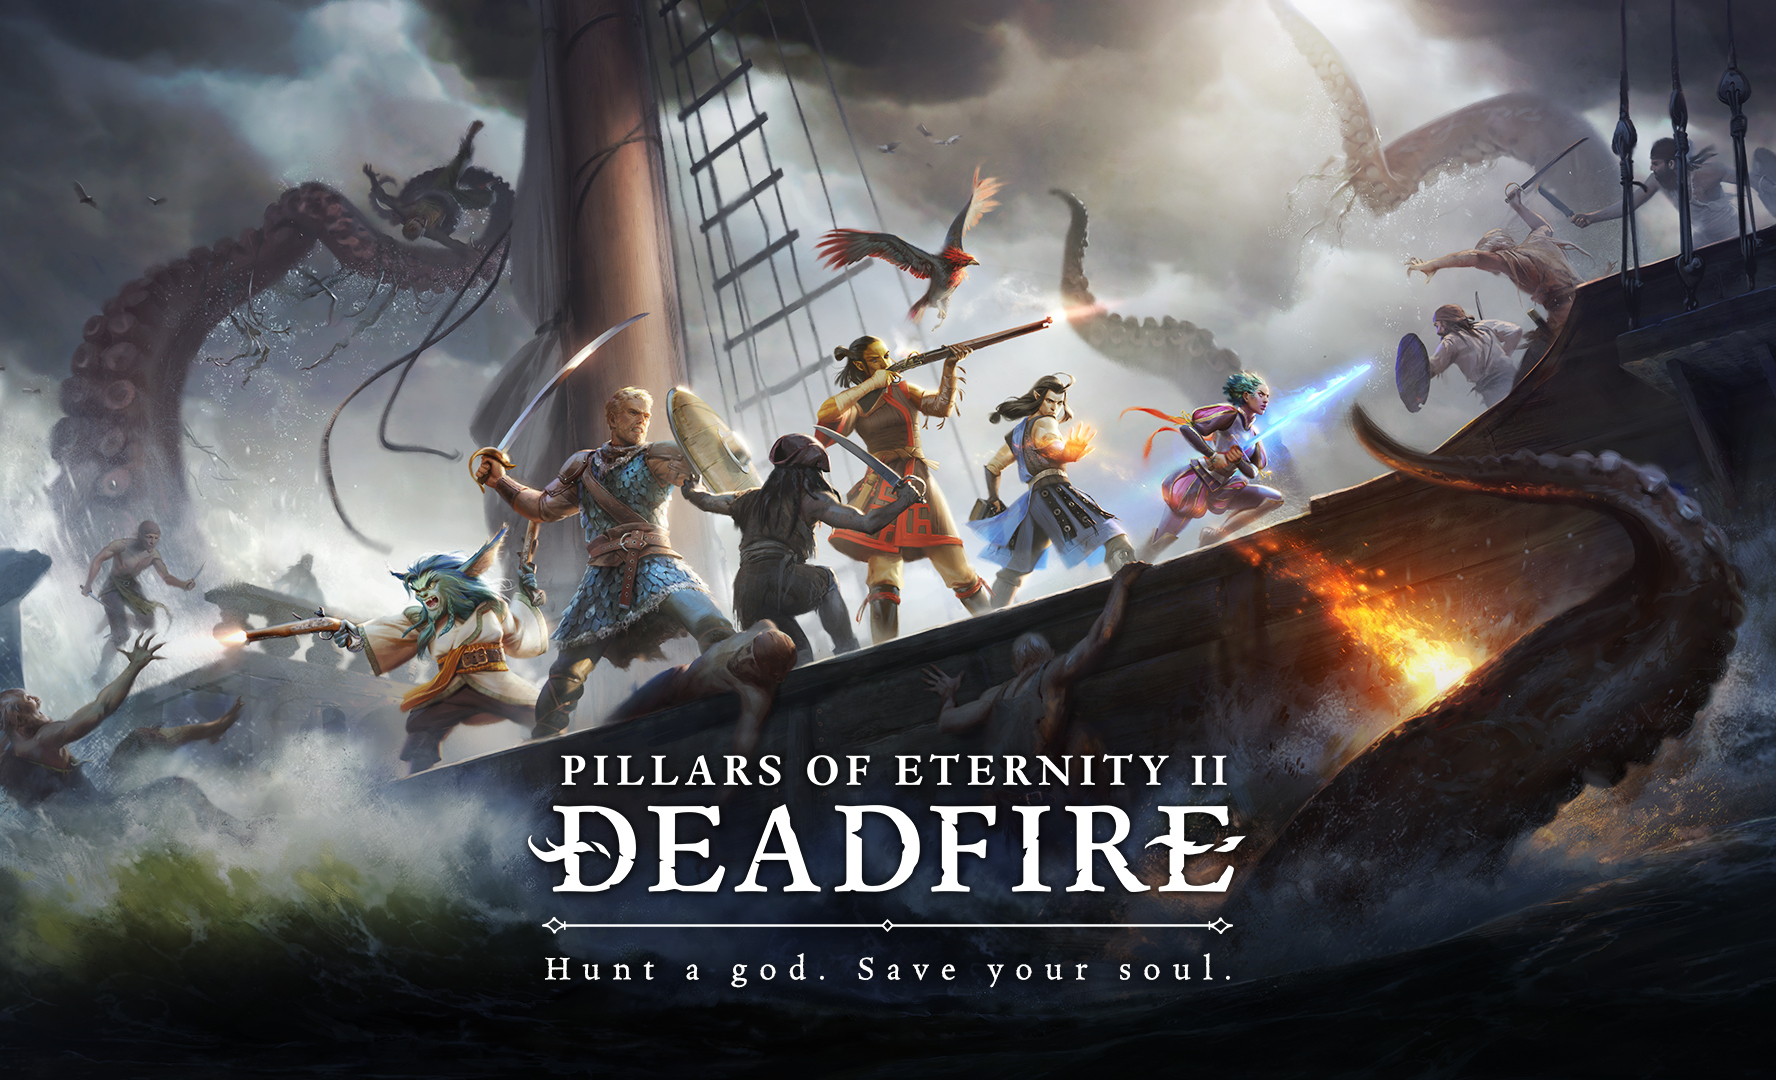 Pillars of Eternity RPG games for PC 2018